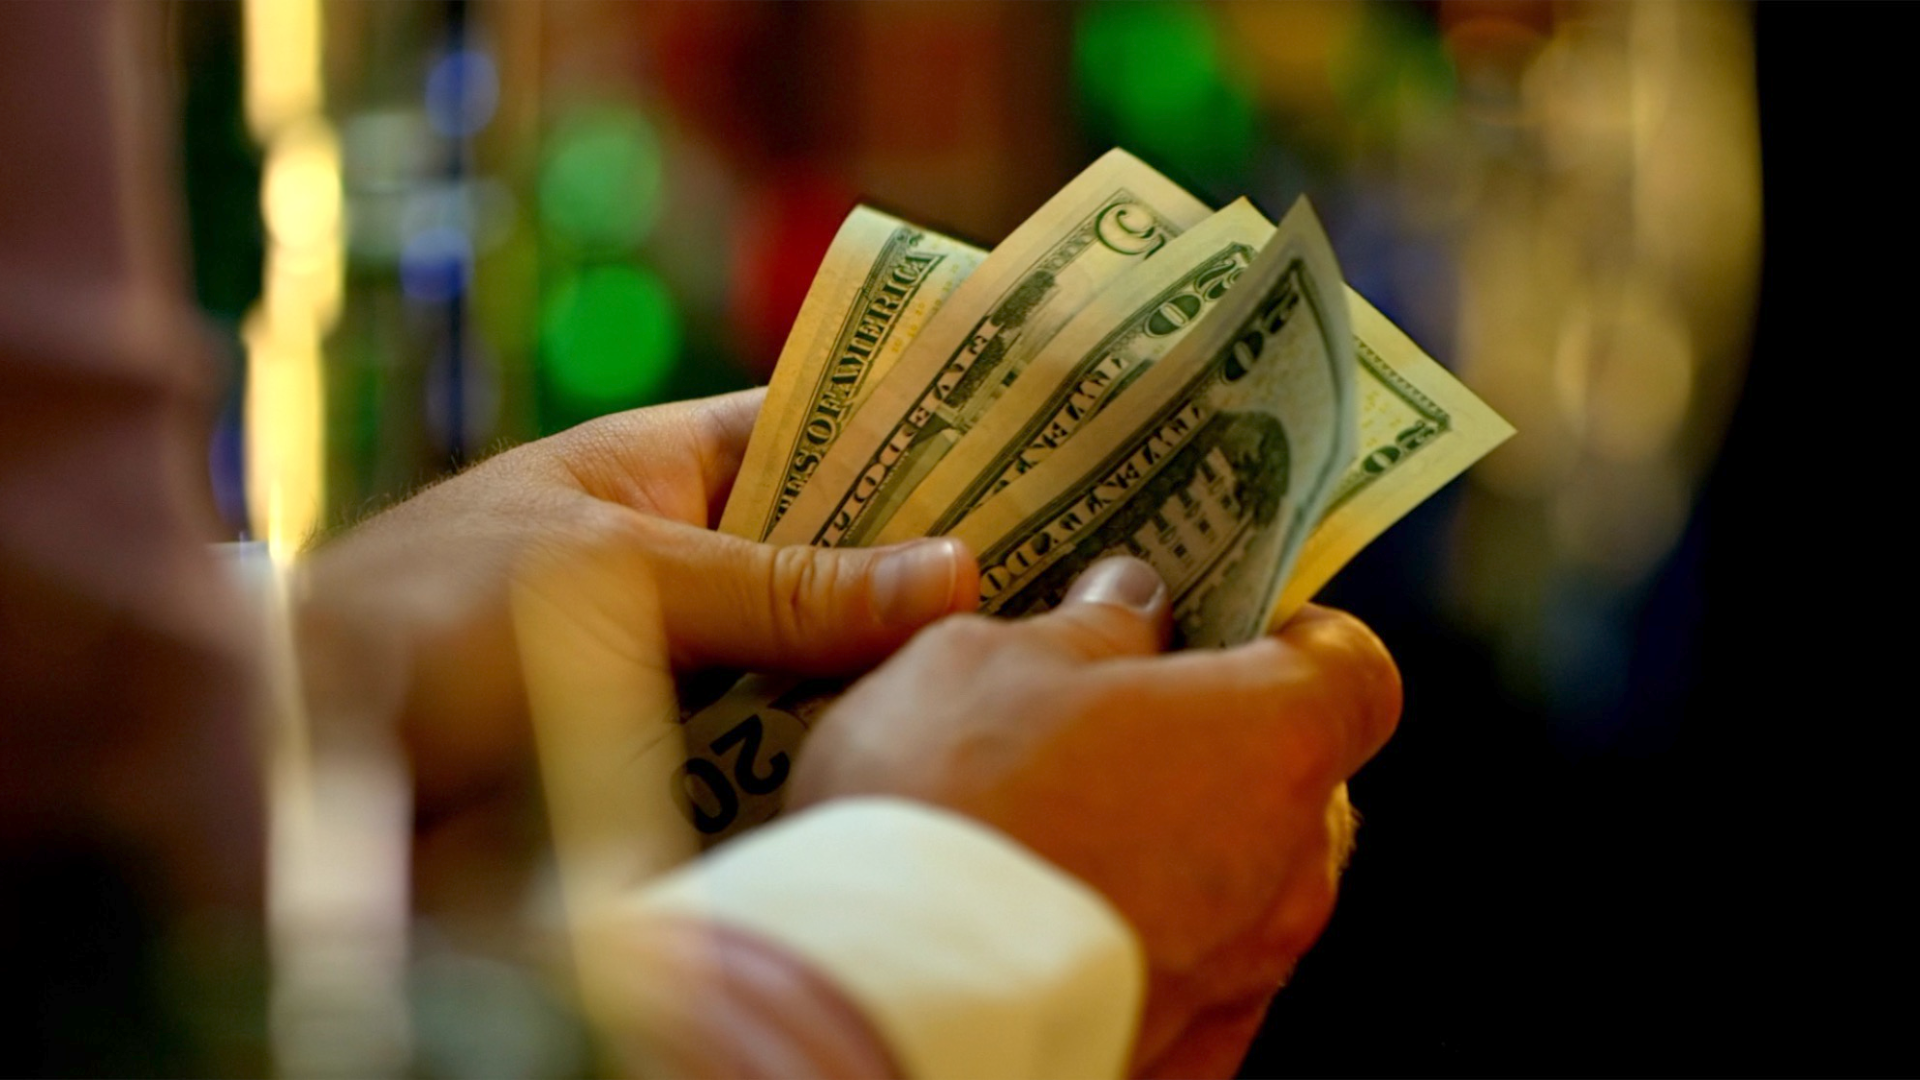 A Bartender Posted A Video Of Her $9.28 Paycheck To Shed Light On The Importance Of Tipping